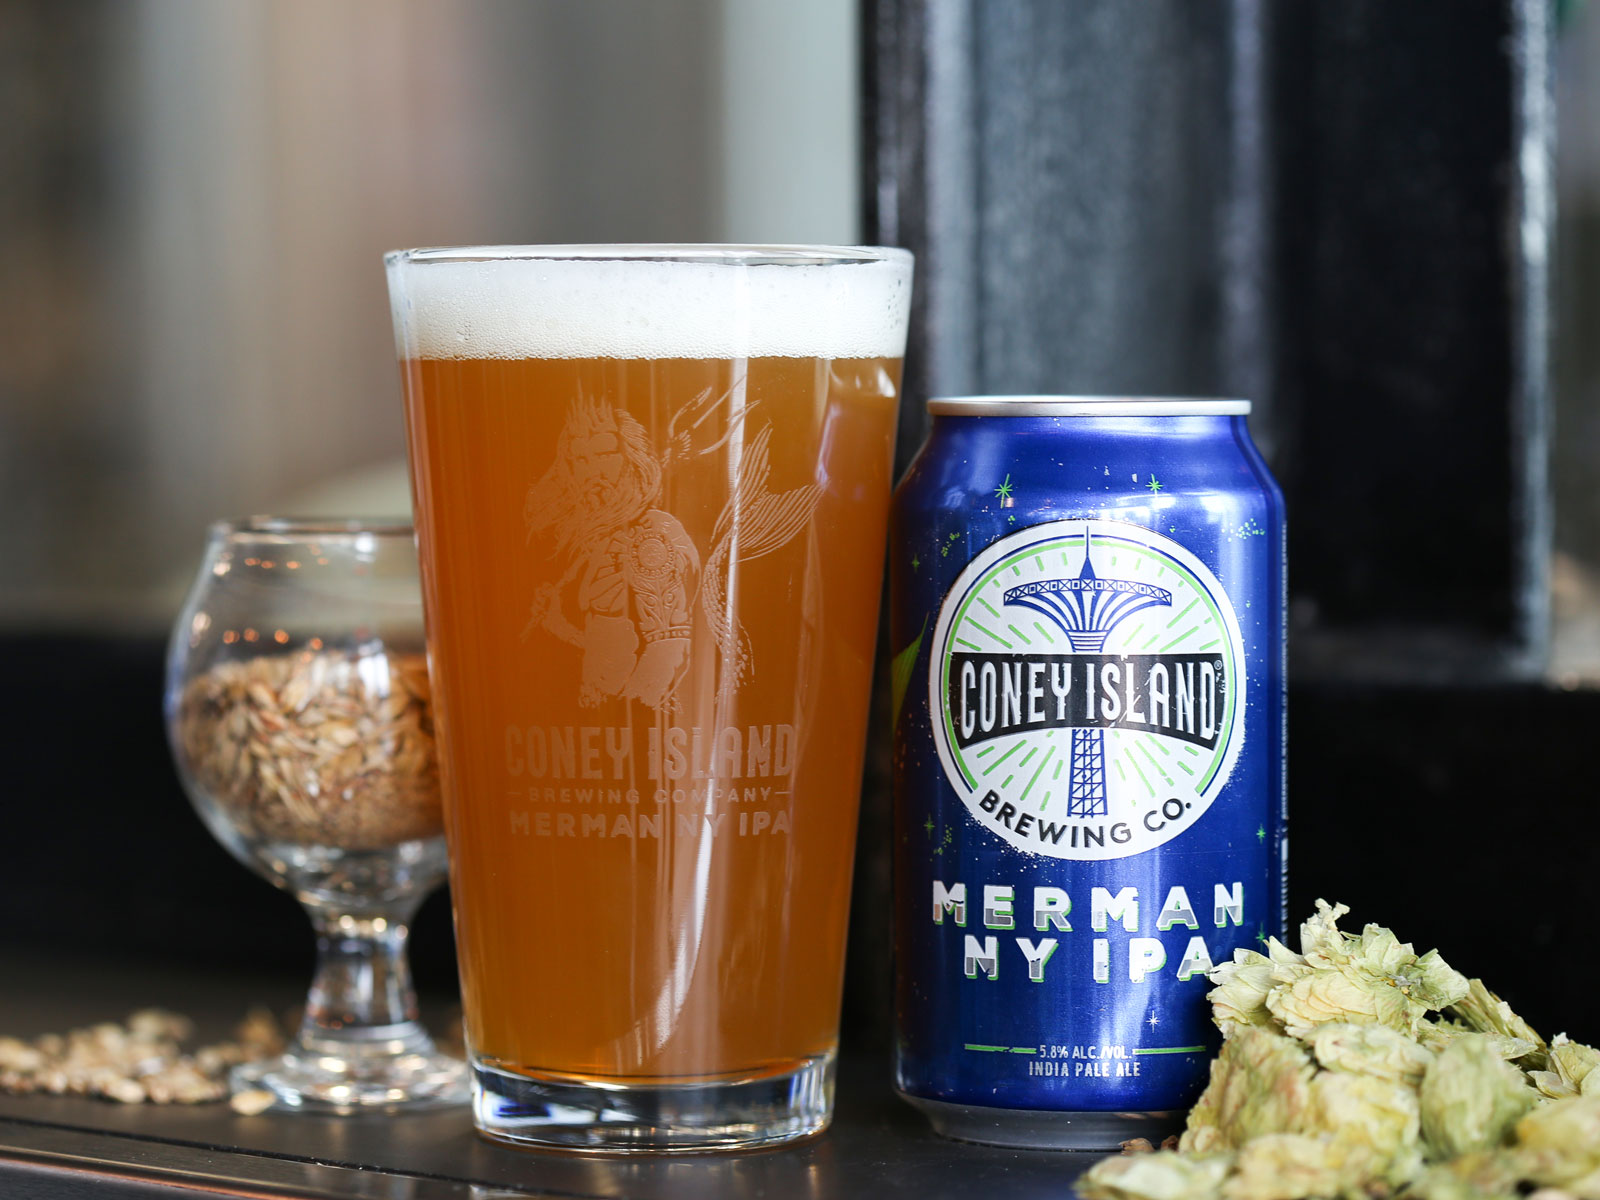 New York Brewery 'Invents' a New Kind of IPA